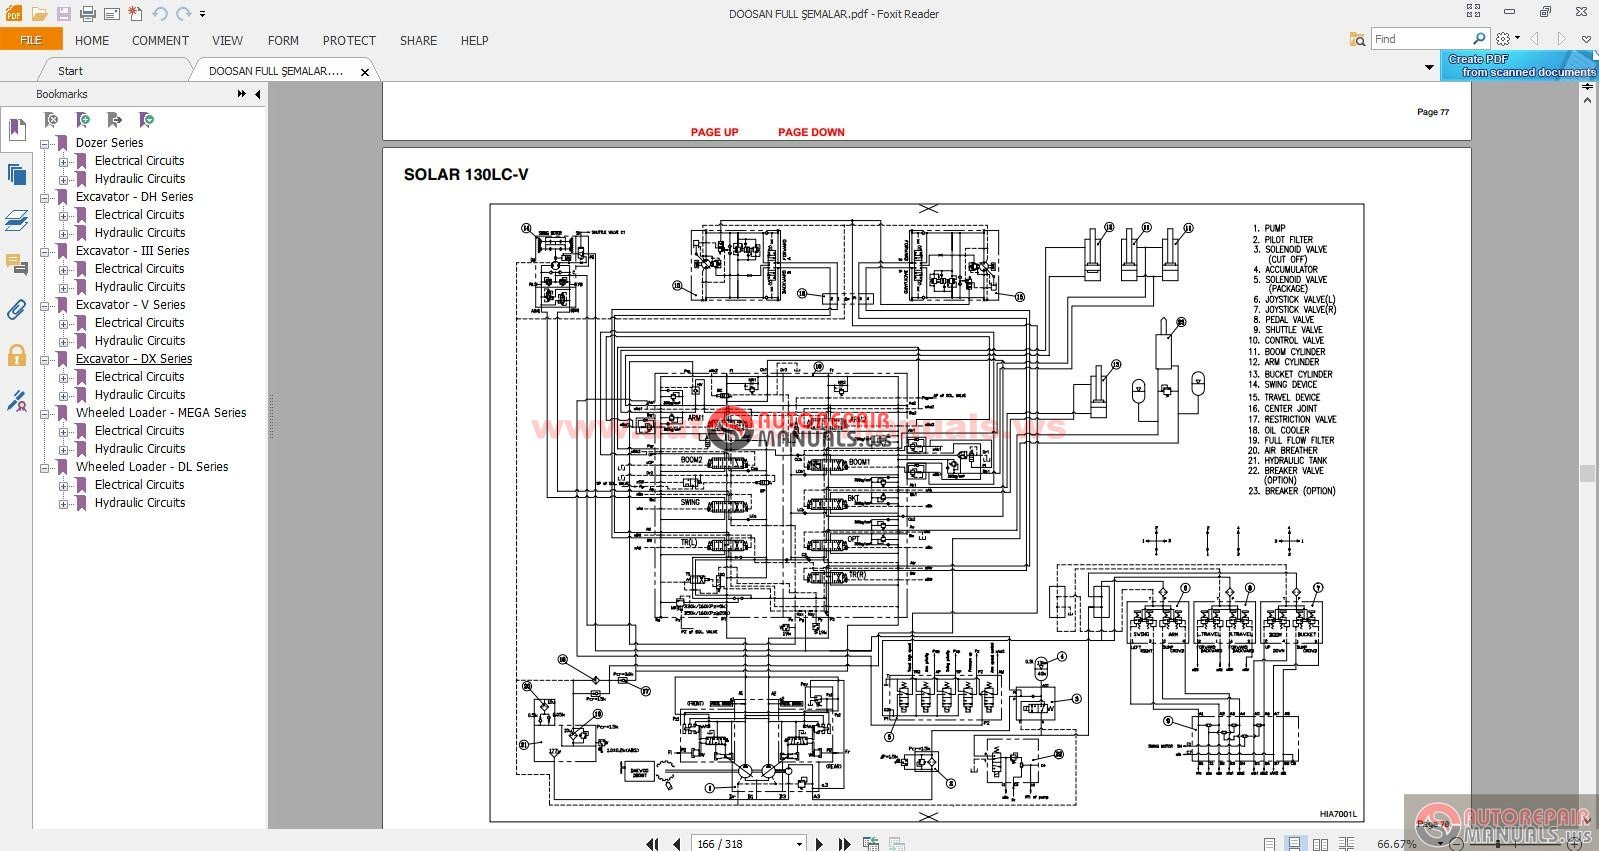 Wiring Diagram Ls190 on breaker parts diagram, breaker cover, electrical breaker box diagram, home breaker box diagram, breaker circuit, breaker components diagram, breaker control diagram,